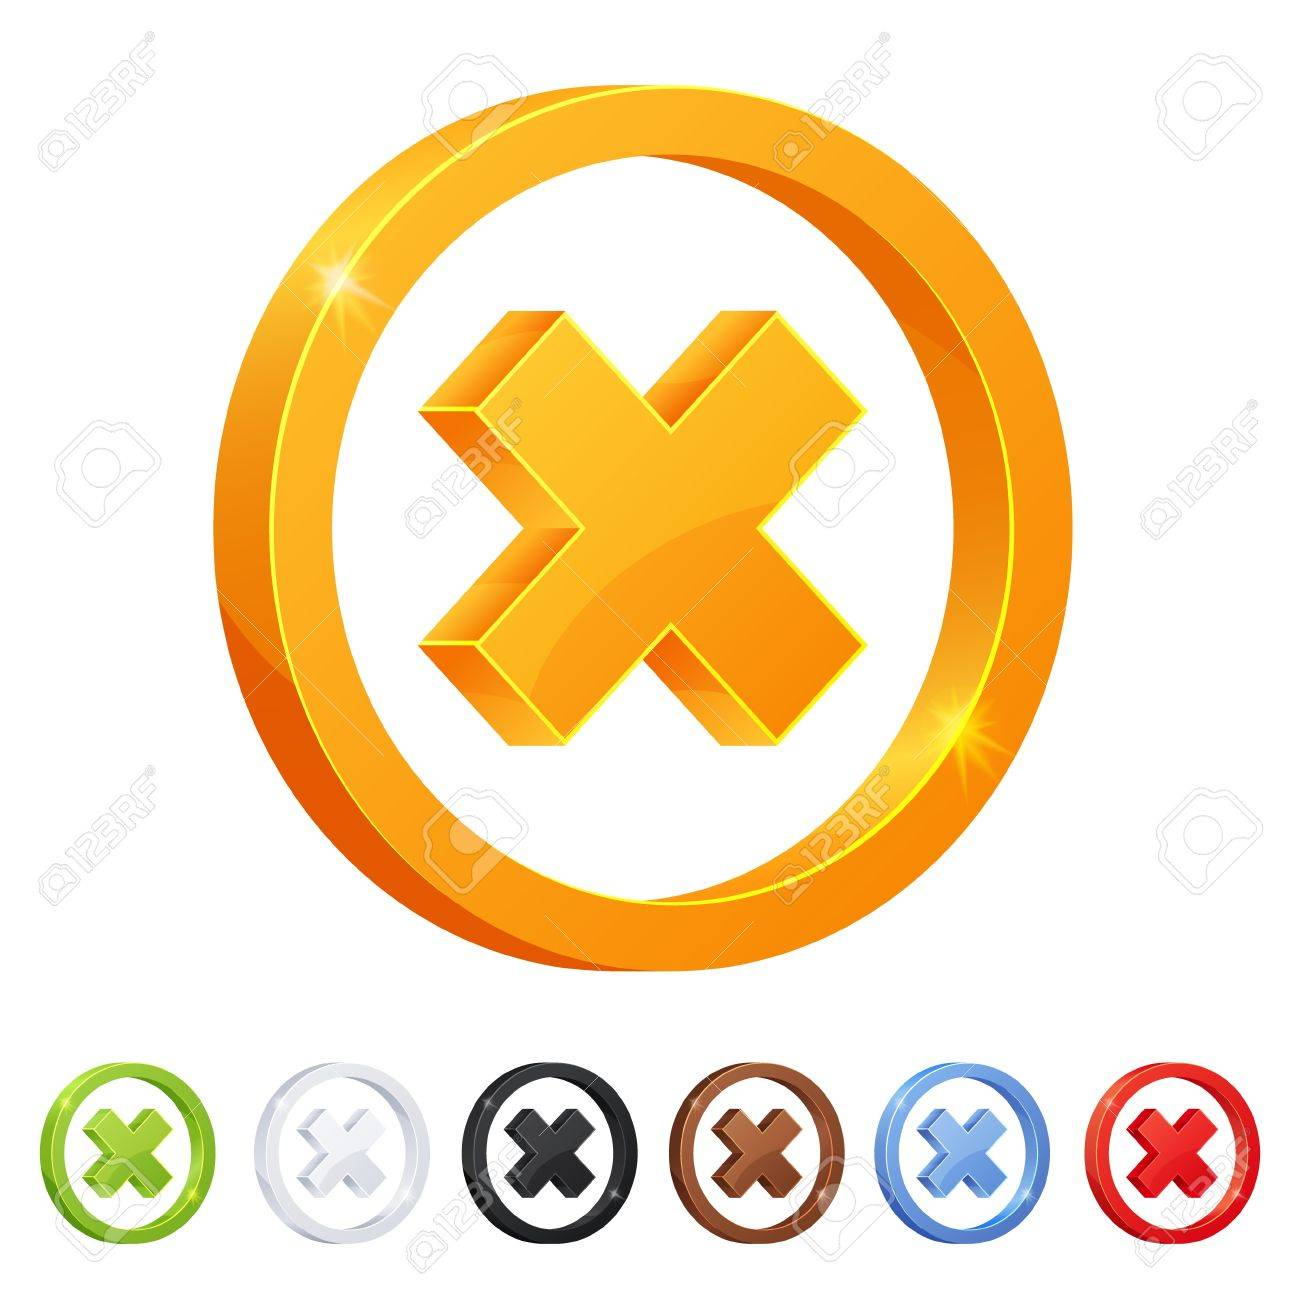 Set of 7 X mark symbol in different colors Stock Vector - 18343012